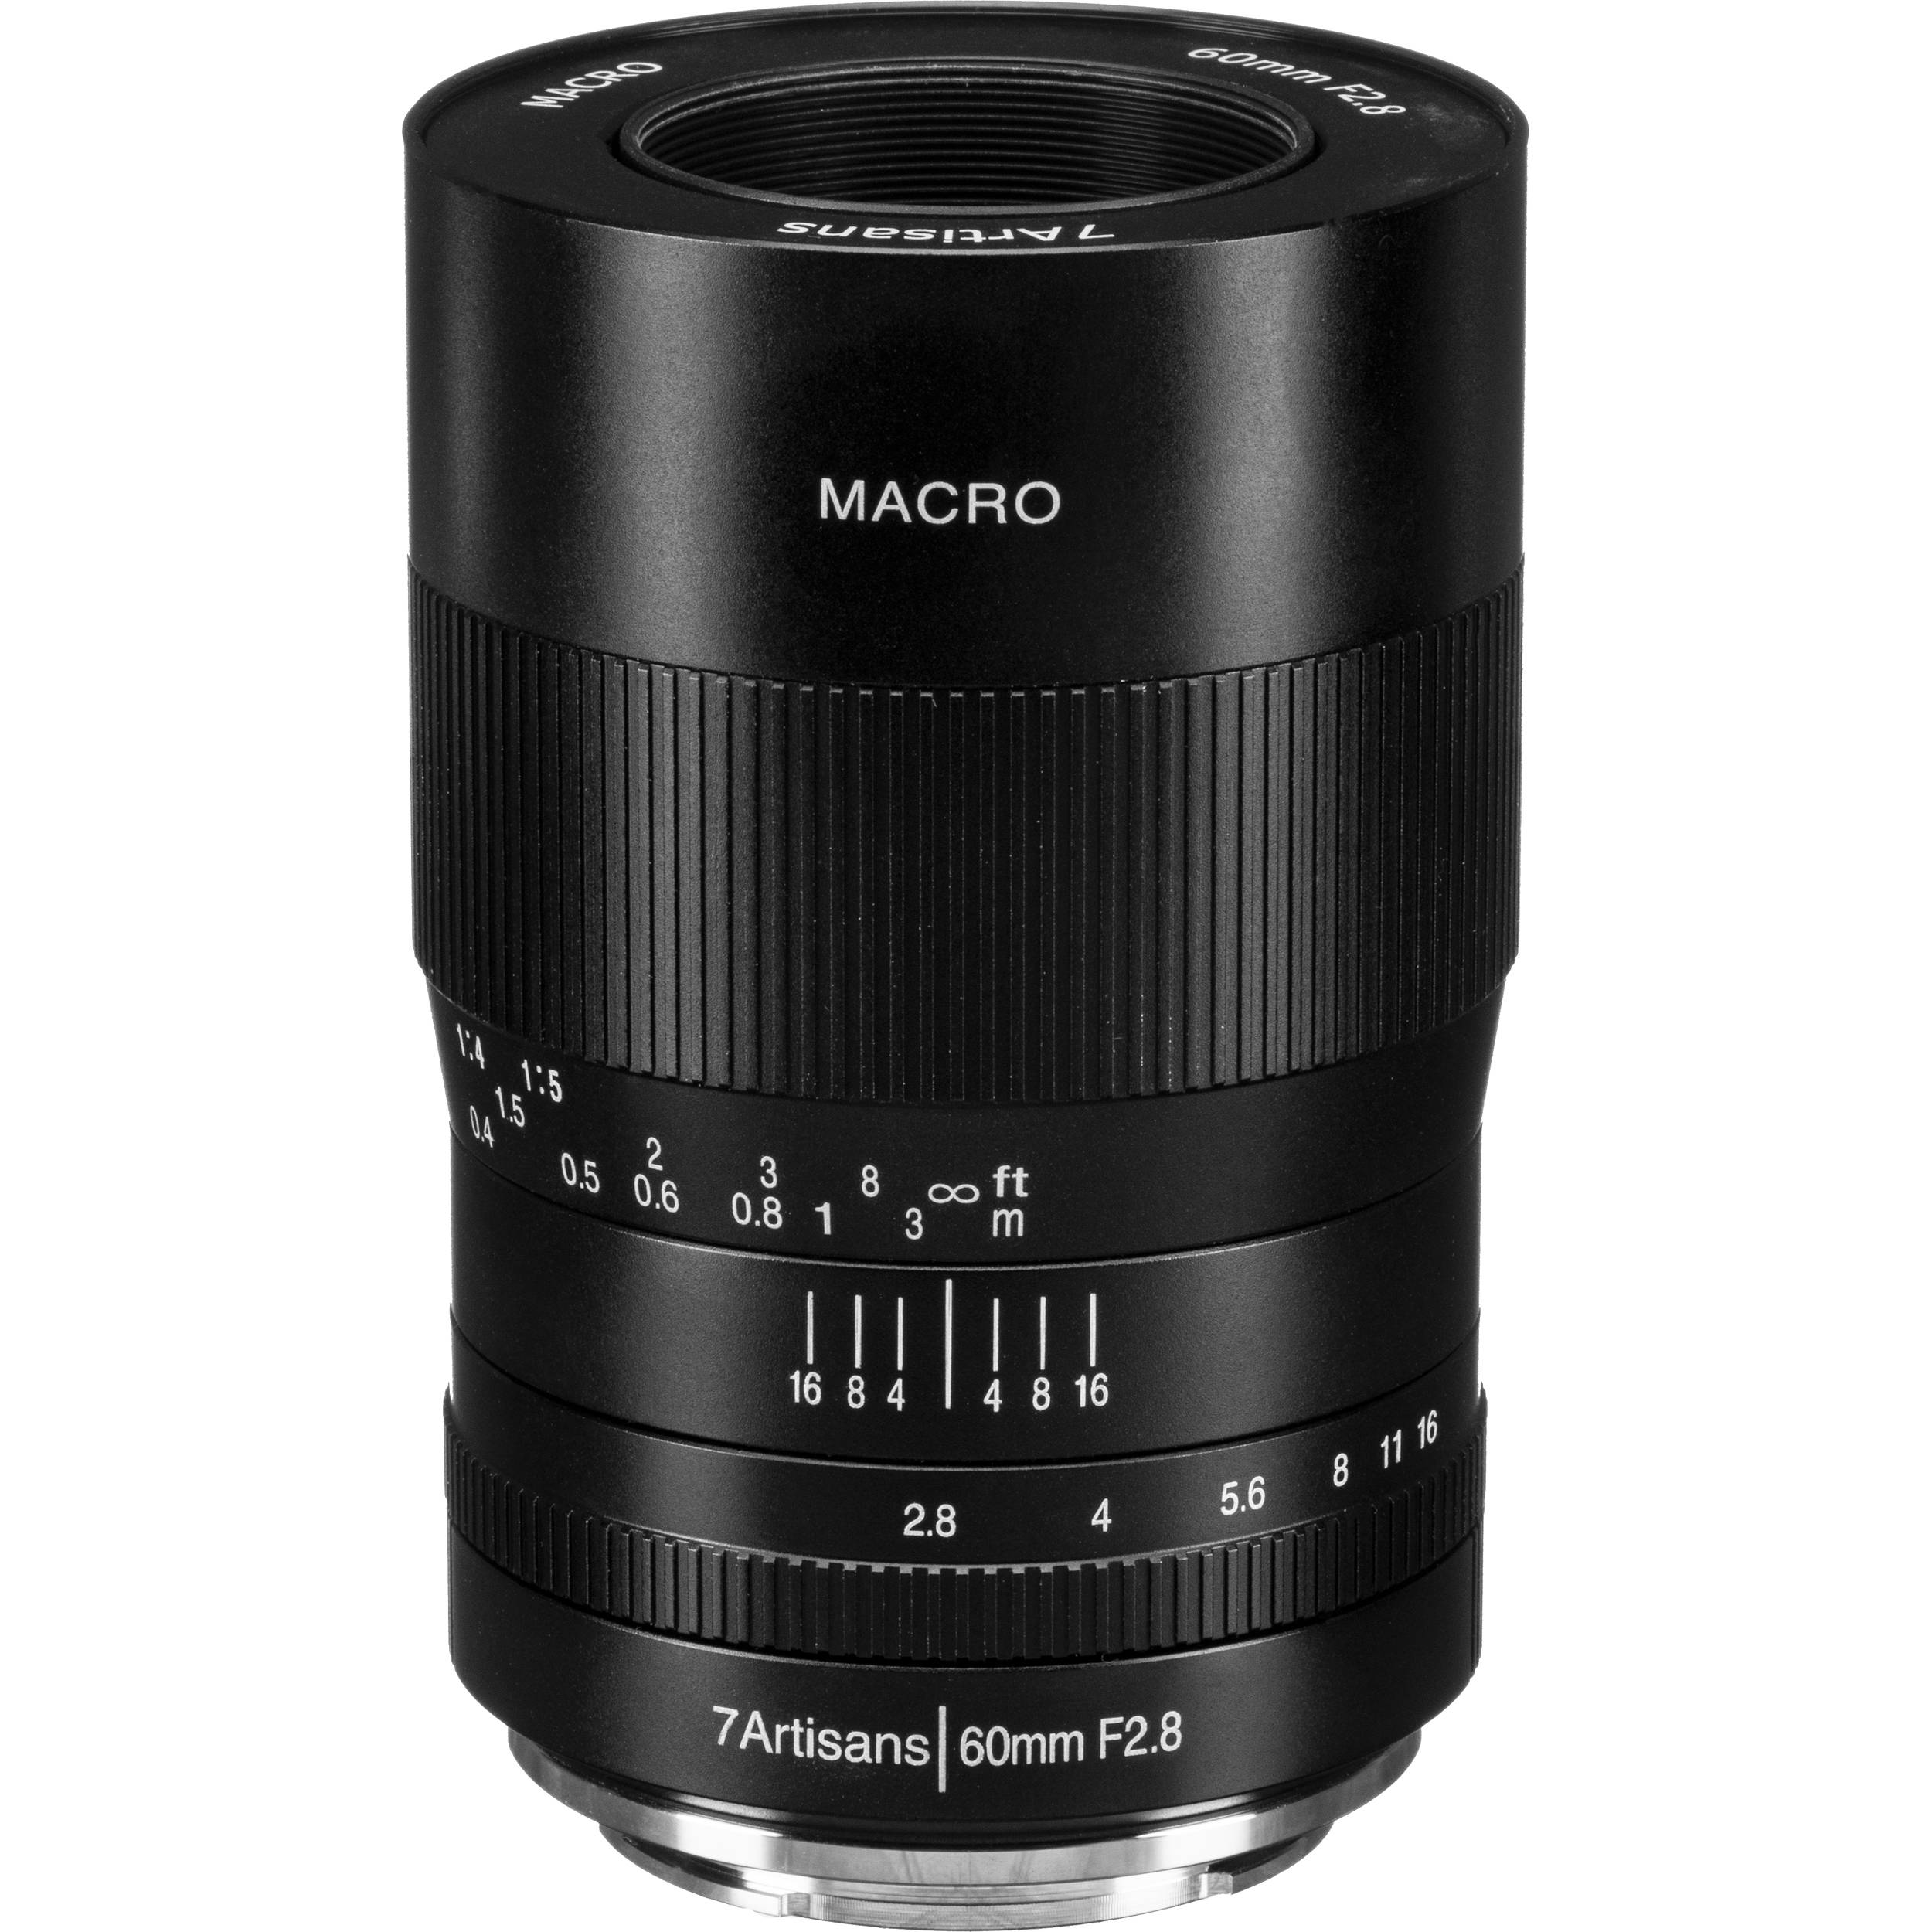 7artisans 60mm F2.8 APS-C Fixed Macro Lens for Nikon Z-Mount Mirrorless Cameras Manual Focus for Macro Photography